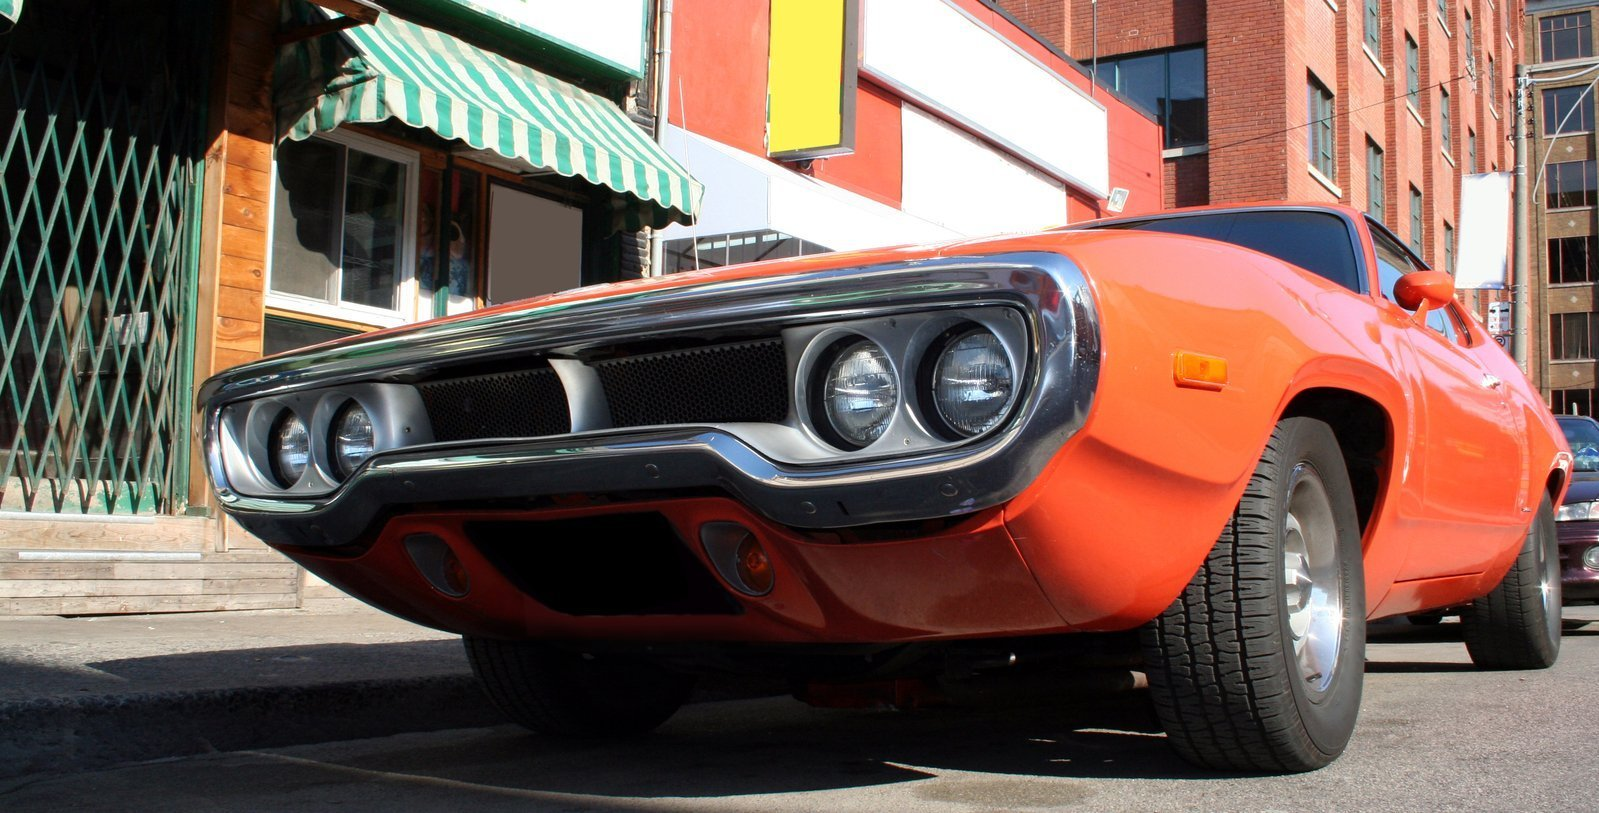 Latest Free Muscle Car Stock Photo Freeimages Com Free Download